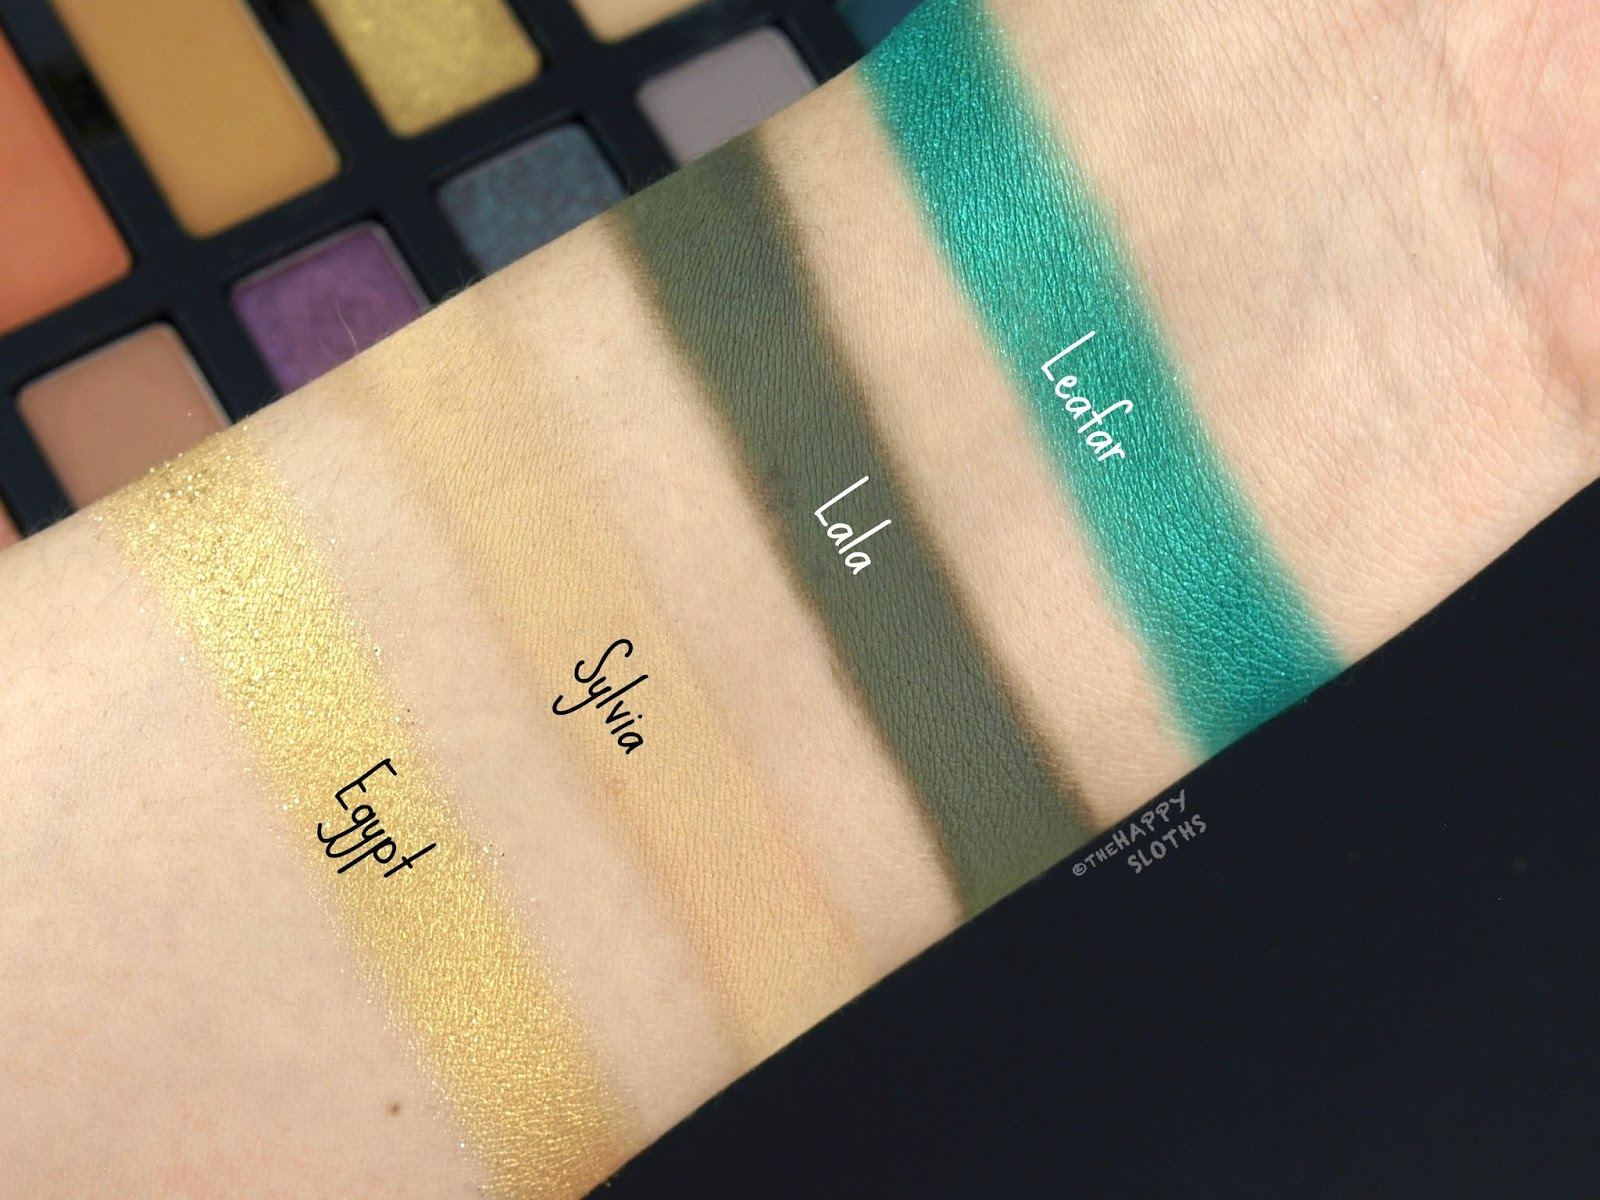 Kat Von D | 10th Anniversary Eyeshadow Palette: Review and Swatches